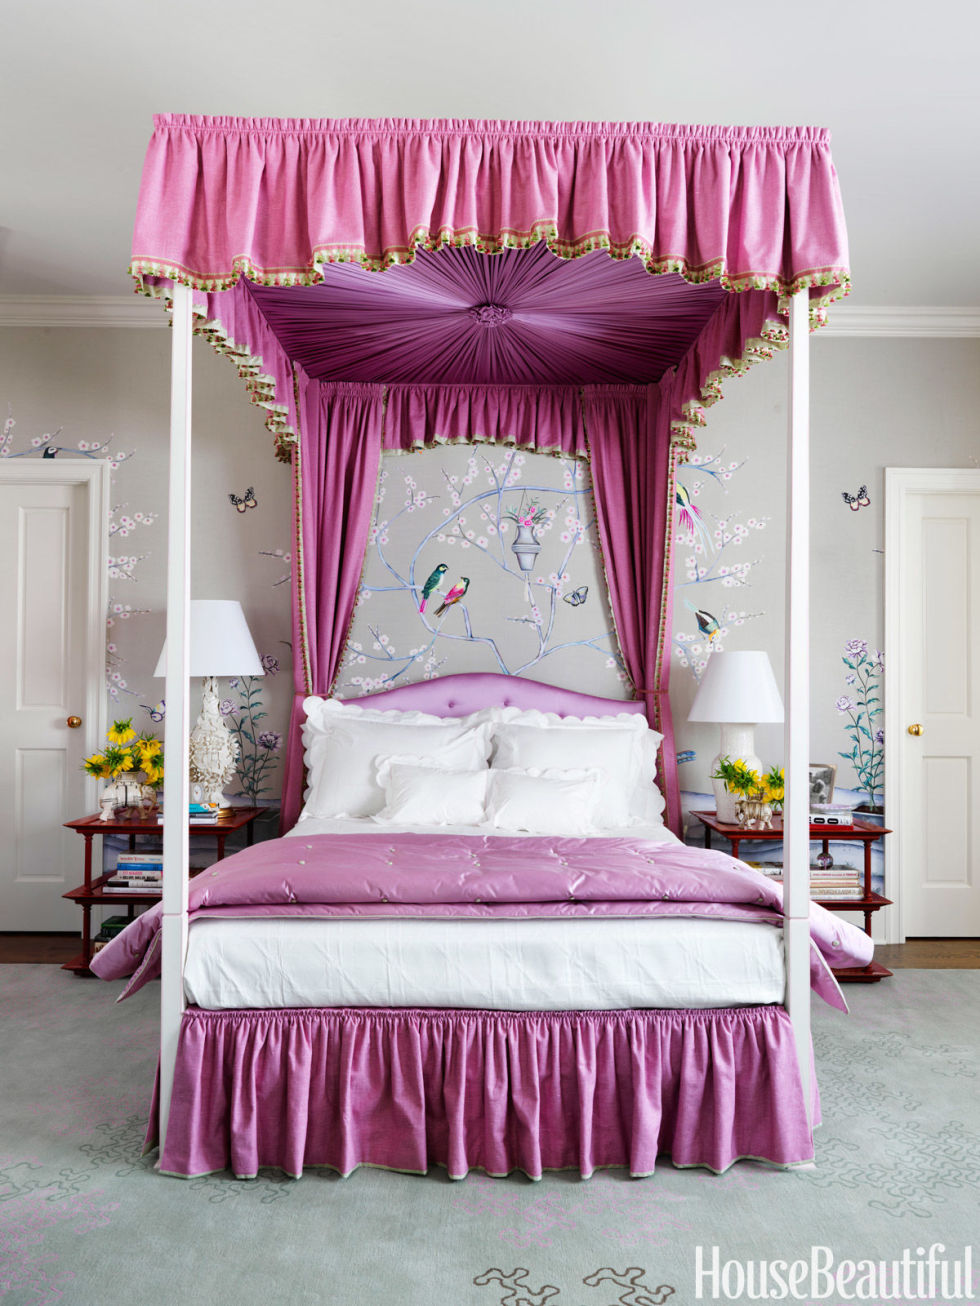 Paint colors for bedrooms pink - Paint Colors For Bedrooms Pink 12